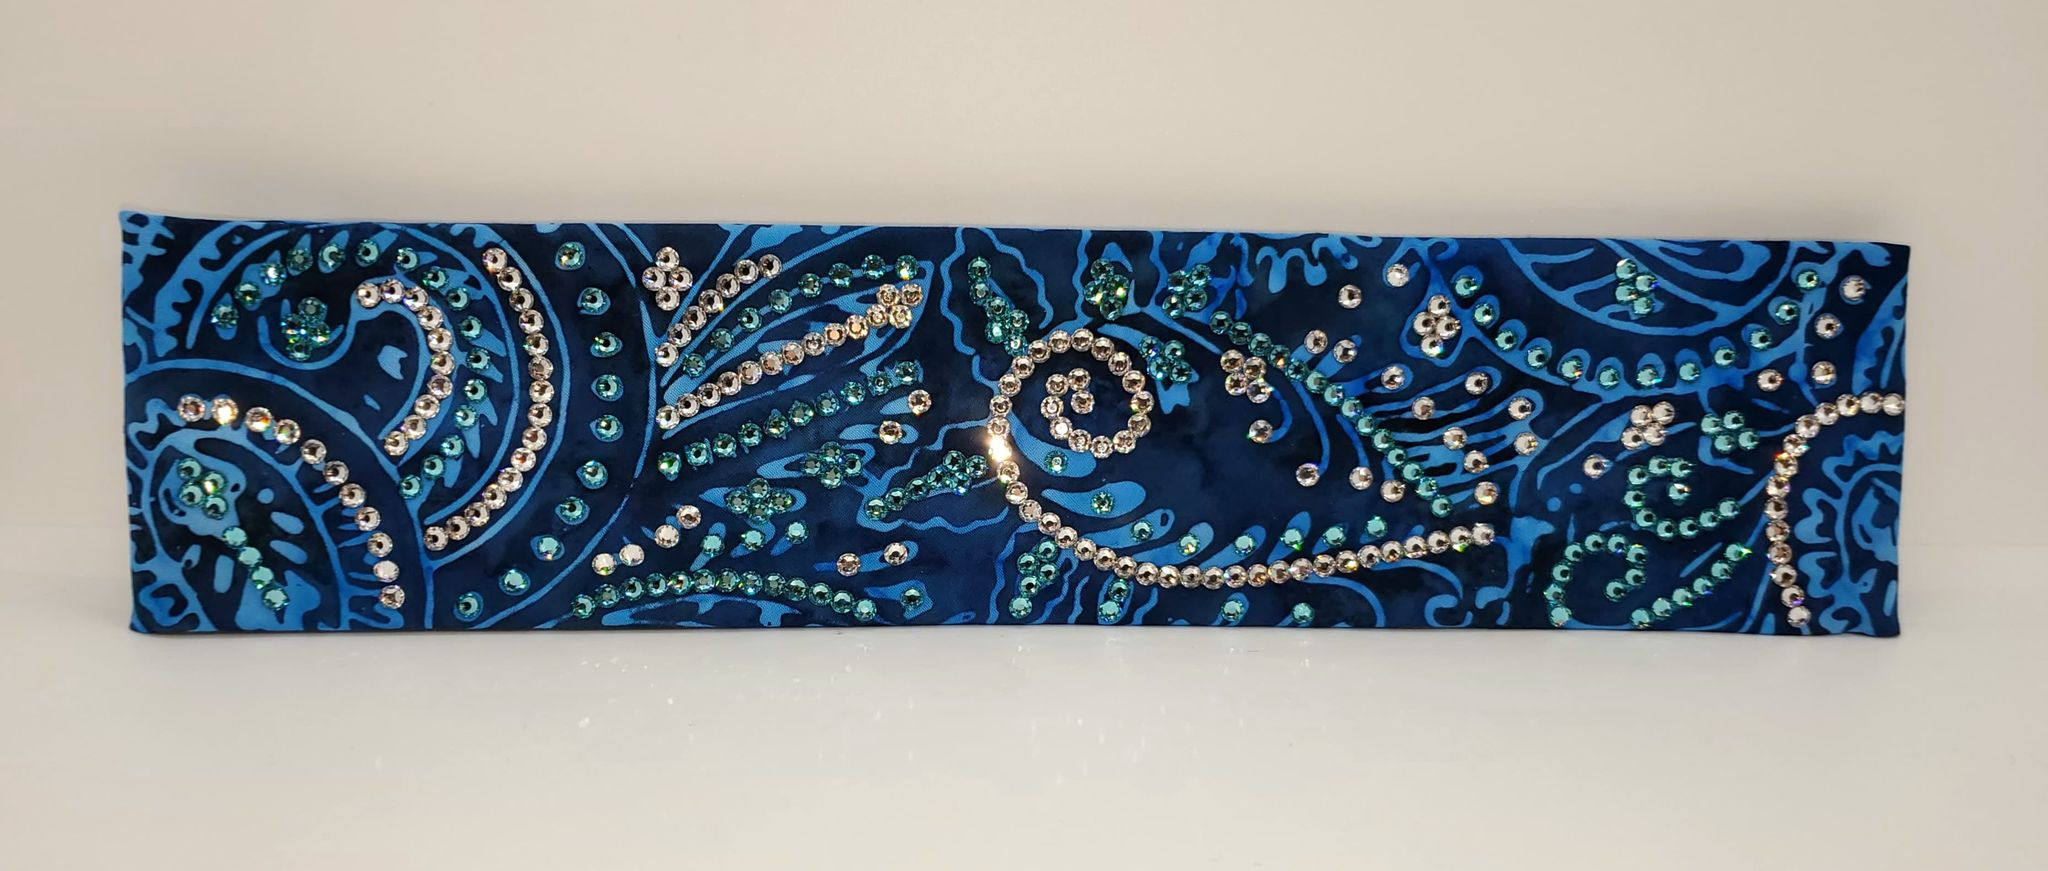 Narrow Blue Batik LeeAnnette with Turquoise and Diamond Clear Swarovski Crystals (Sku4224)